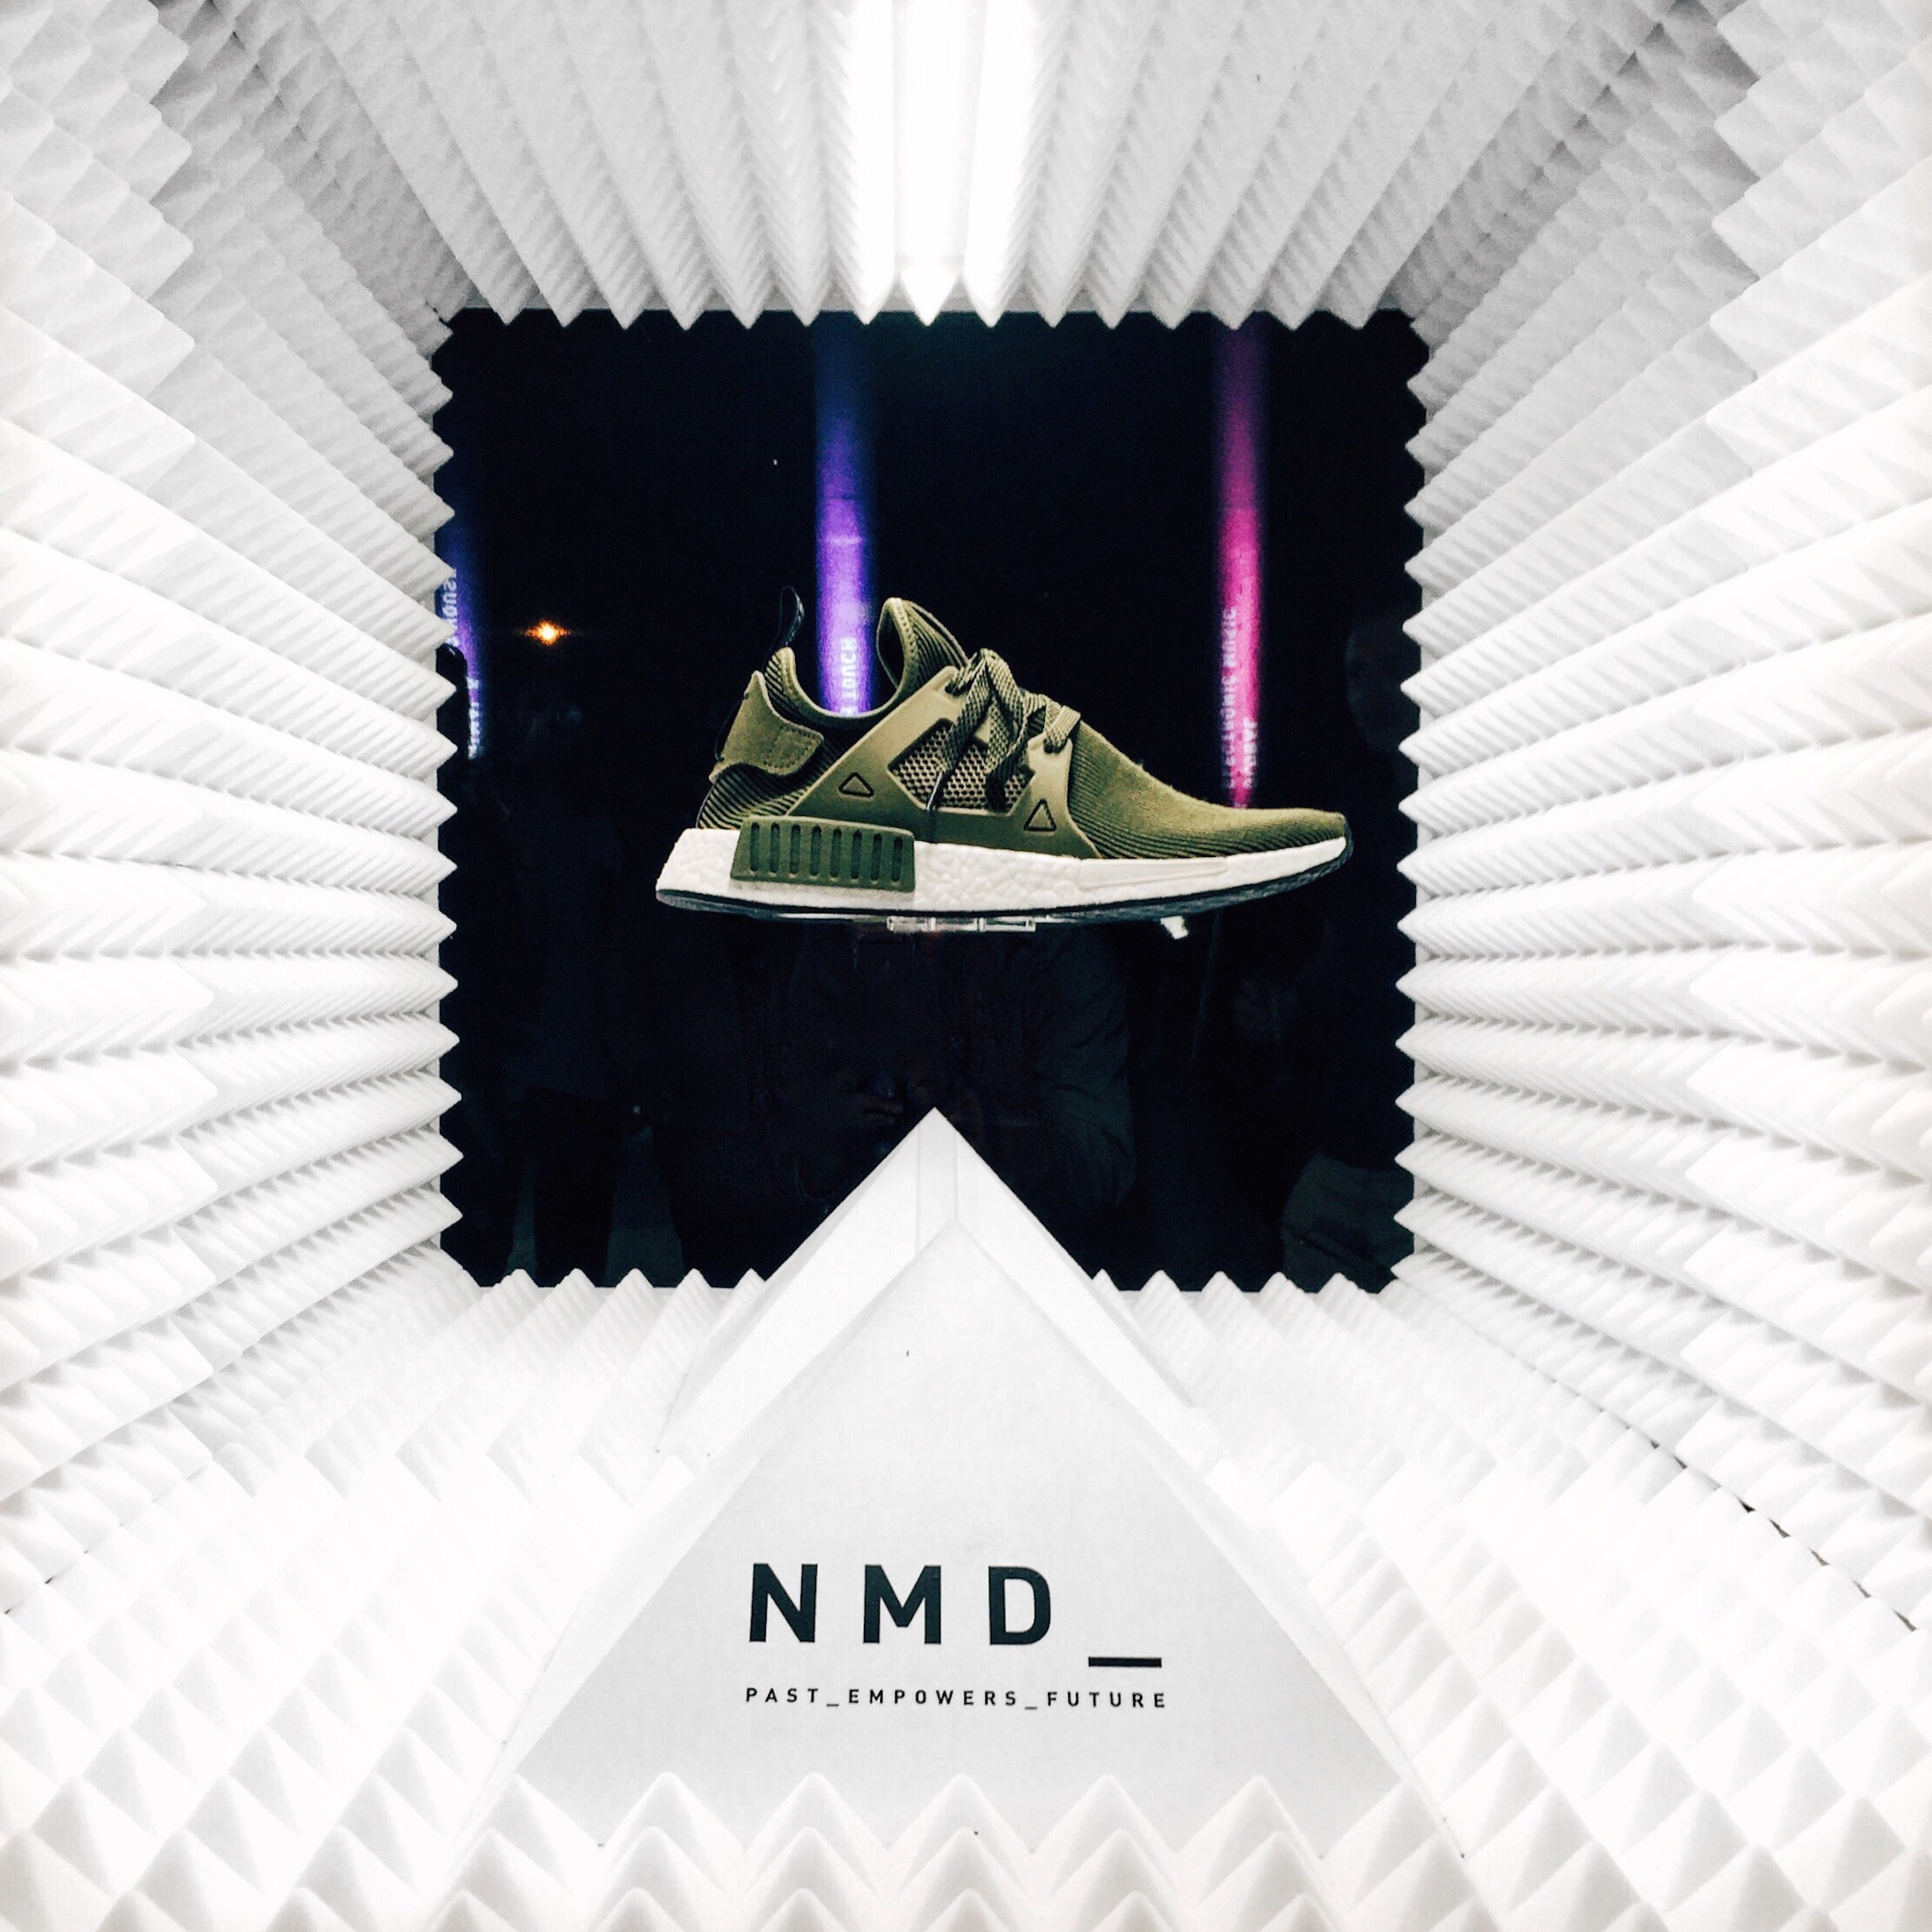 One Night in Paris_Adidas Originals NMD Party Paris_Past Empowers Future_Meanwhile in Awesometown_Austrian Mens Fashion And Style Blog 10